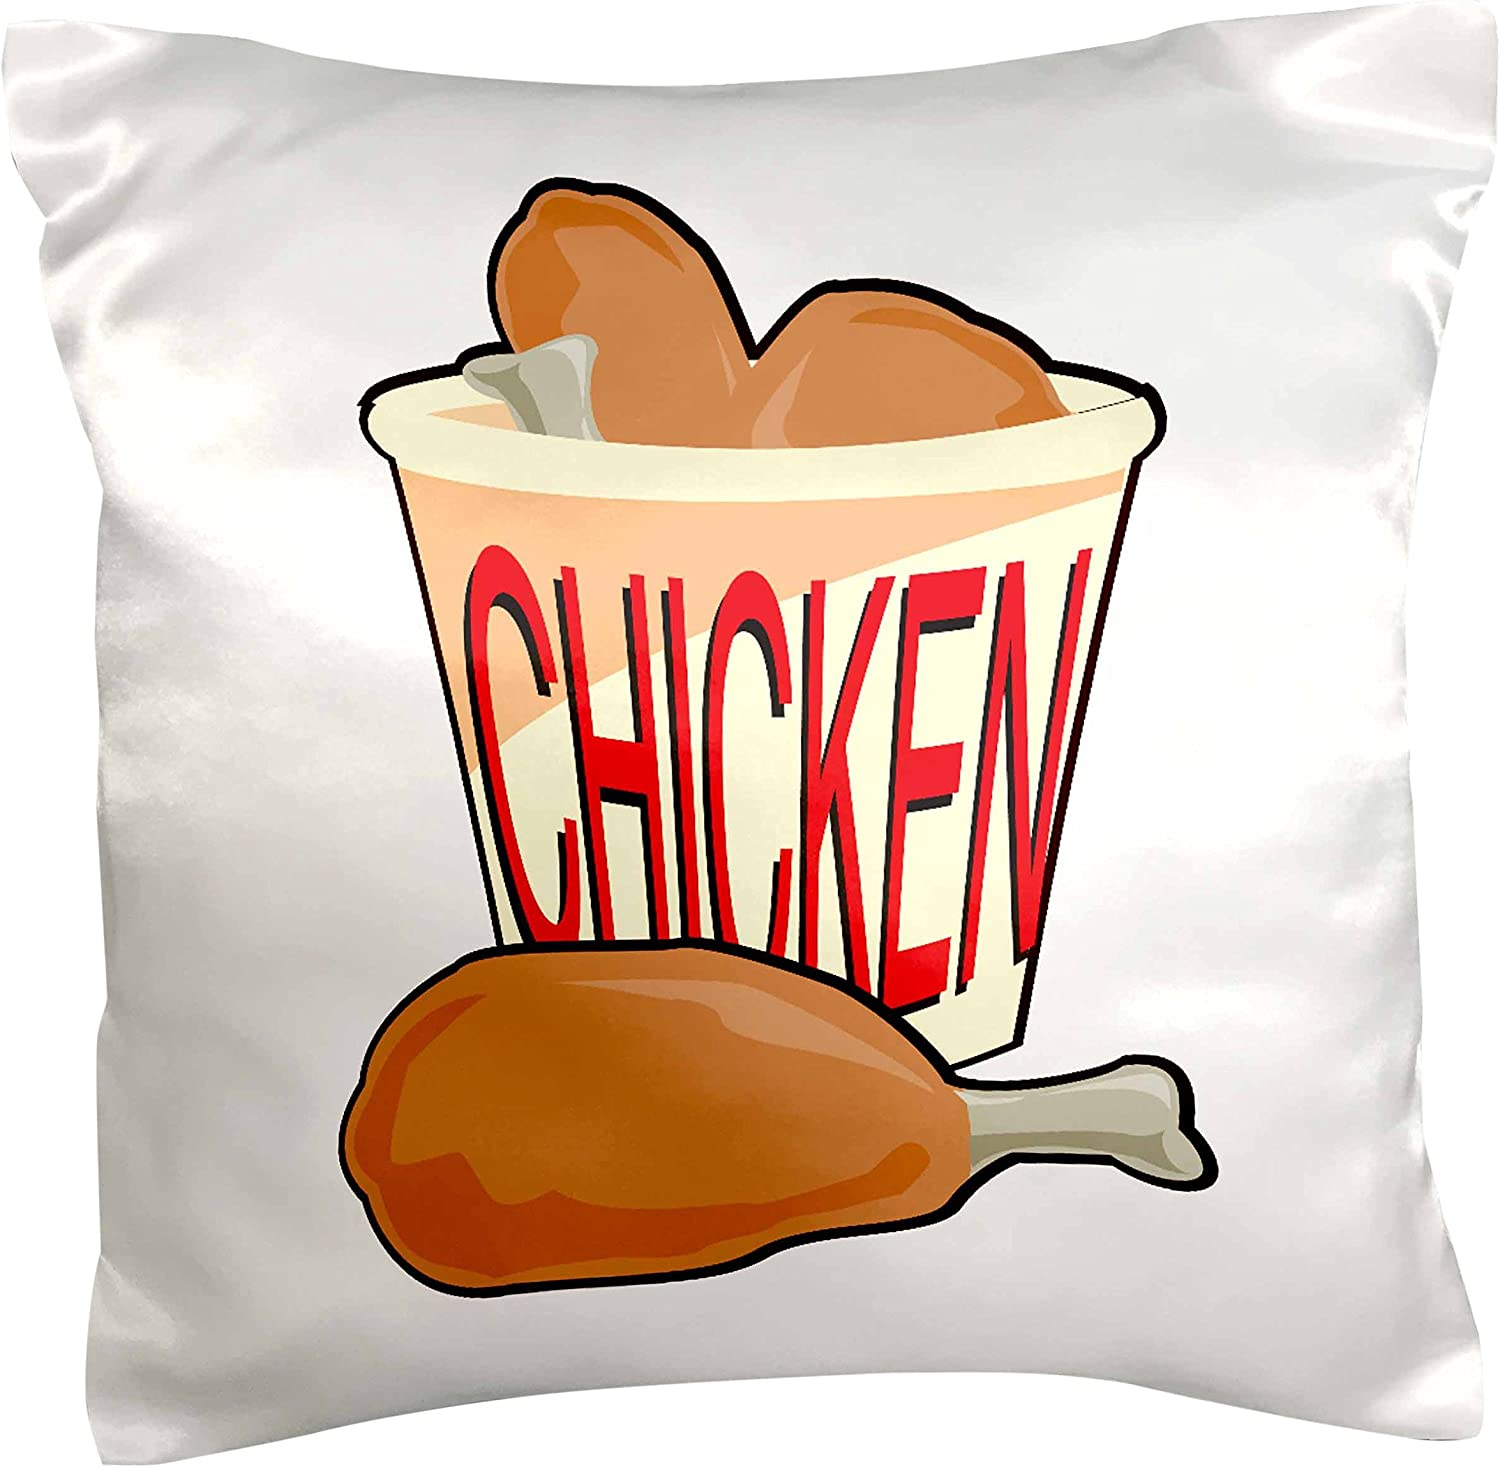 3dRose pc_150099_1 Bucket of Fried Chicken Food Design Pillow Case, 16